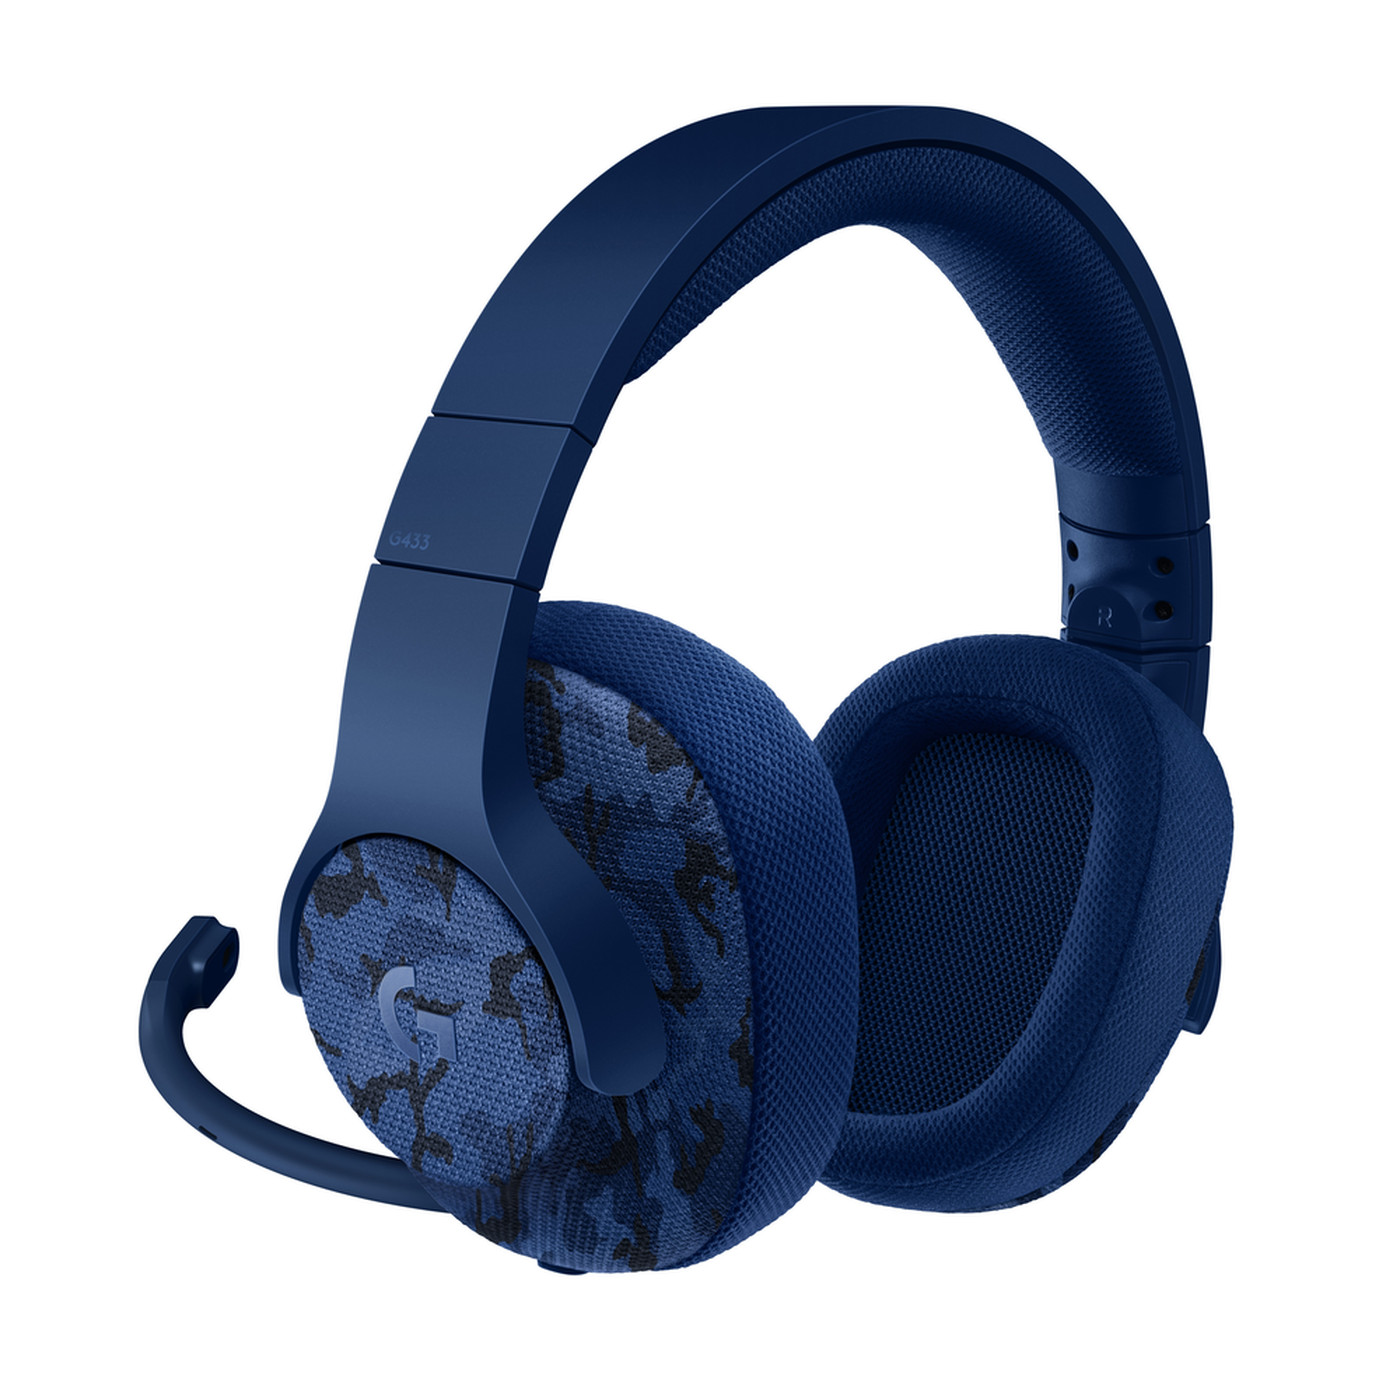 Logitech's new blue camo gaming headphones are perfect for